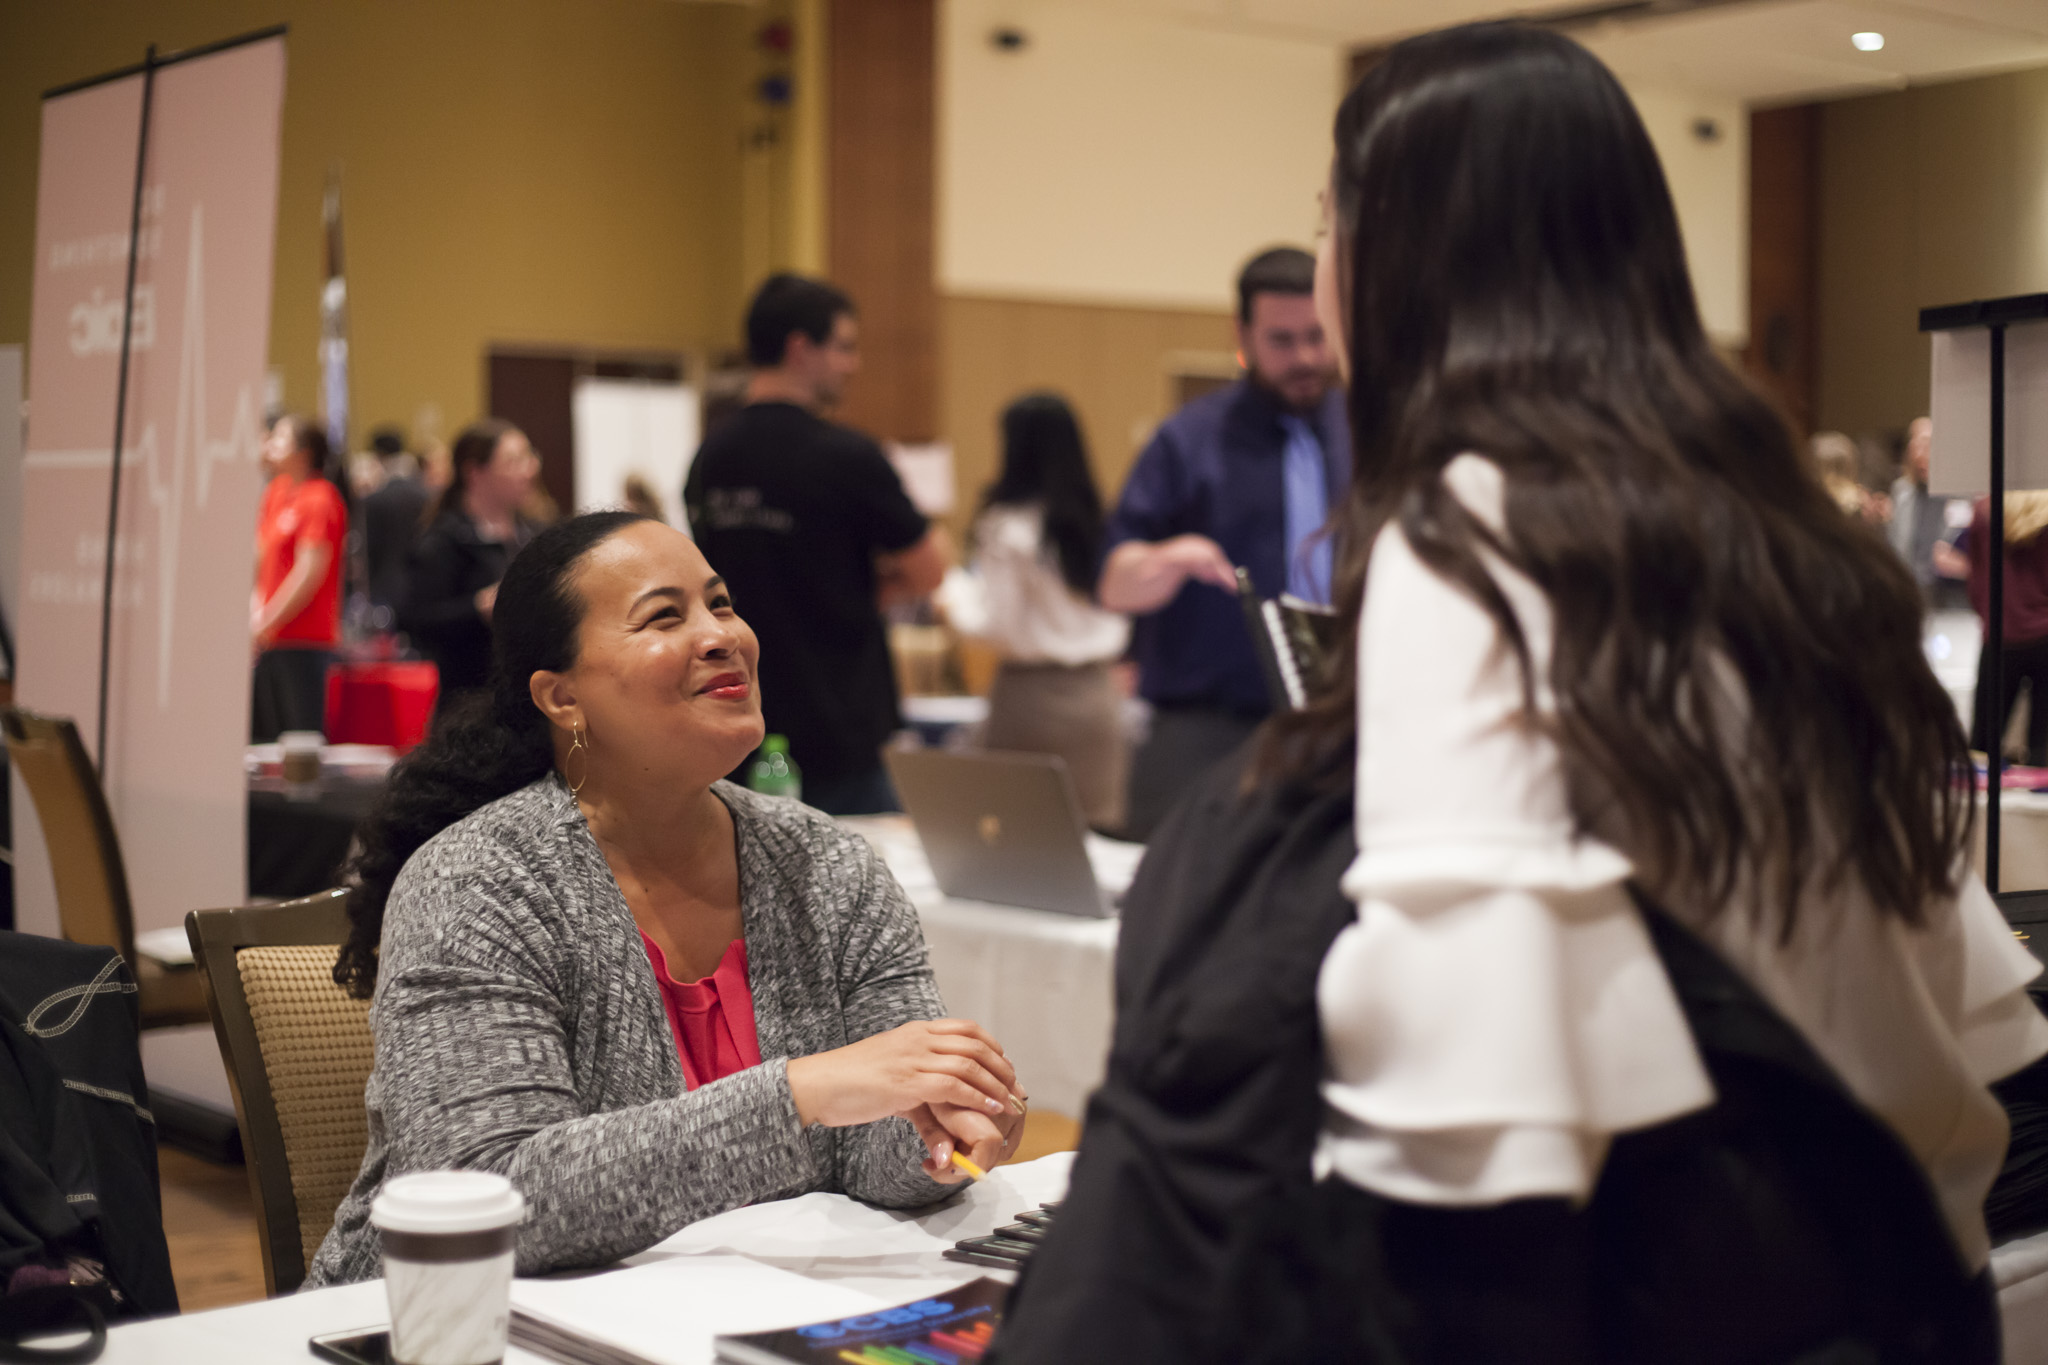 Tiffany Smith-Anoa'i, Executive Vice President, Entertainment Diversity, Inclusion & Communications of CBS Entertainment meets with students at the 2018 Advertising and Communications Career Fair at UW–Madison.